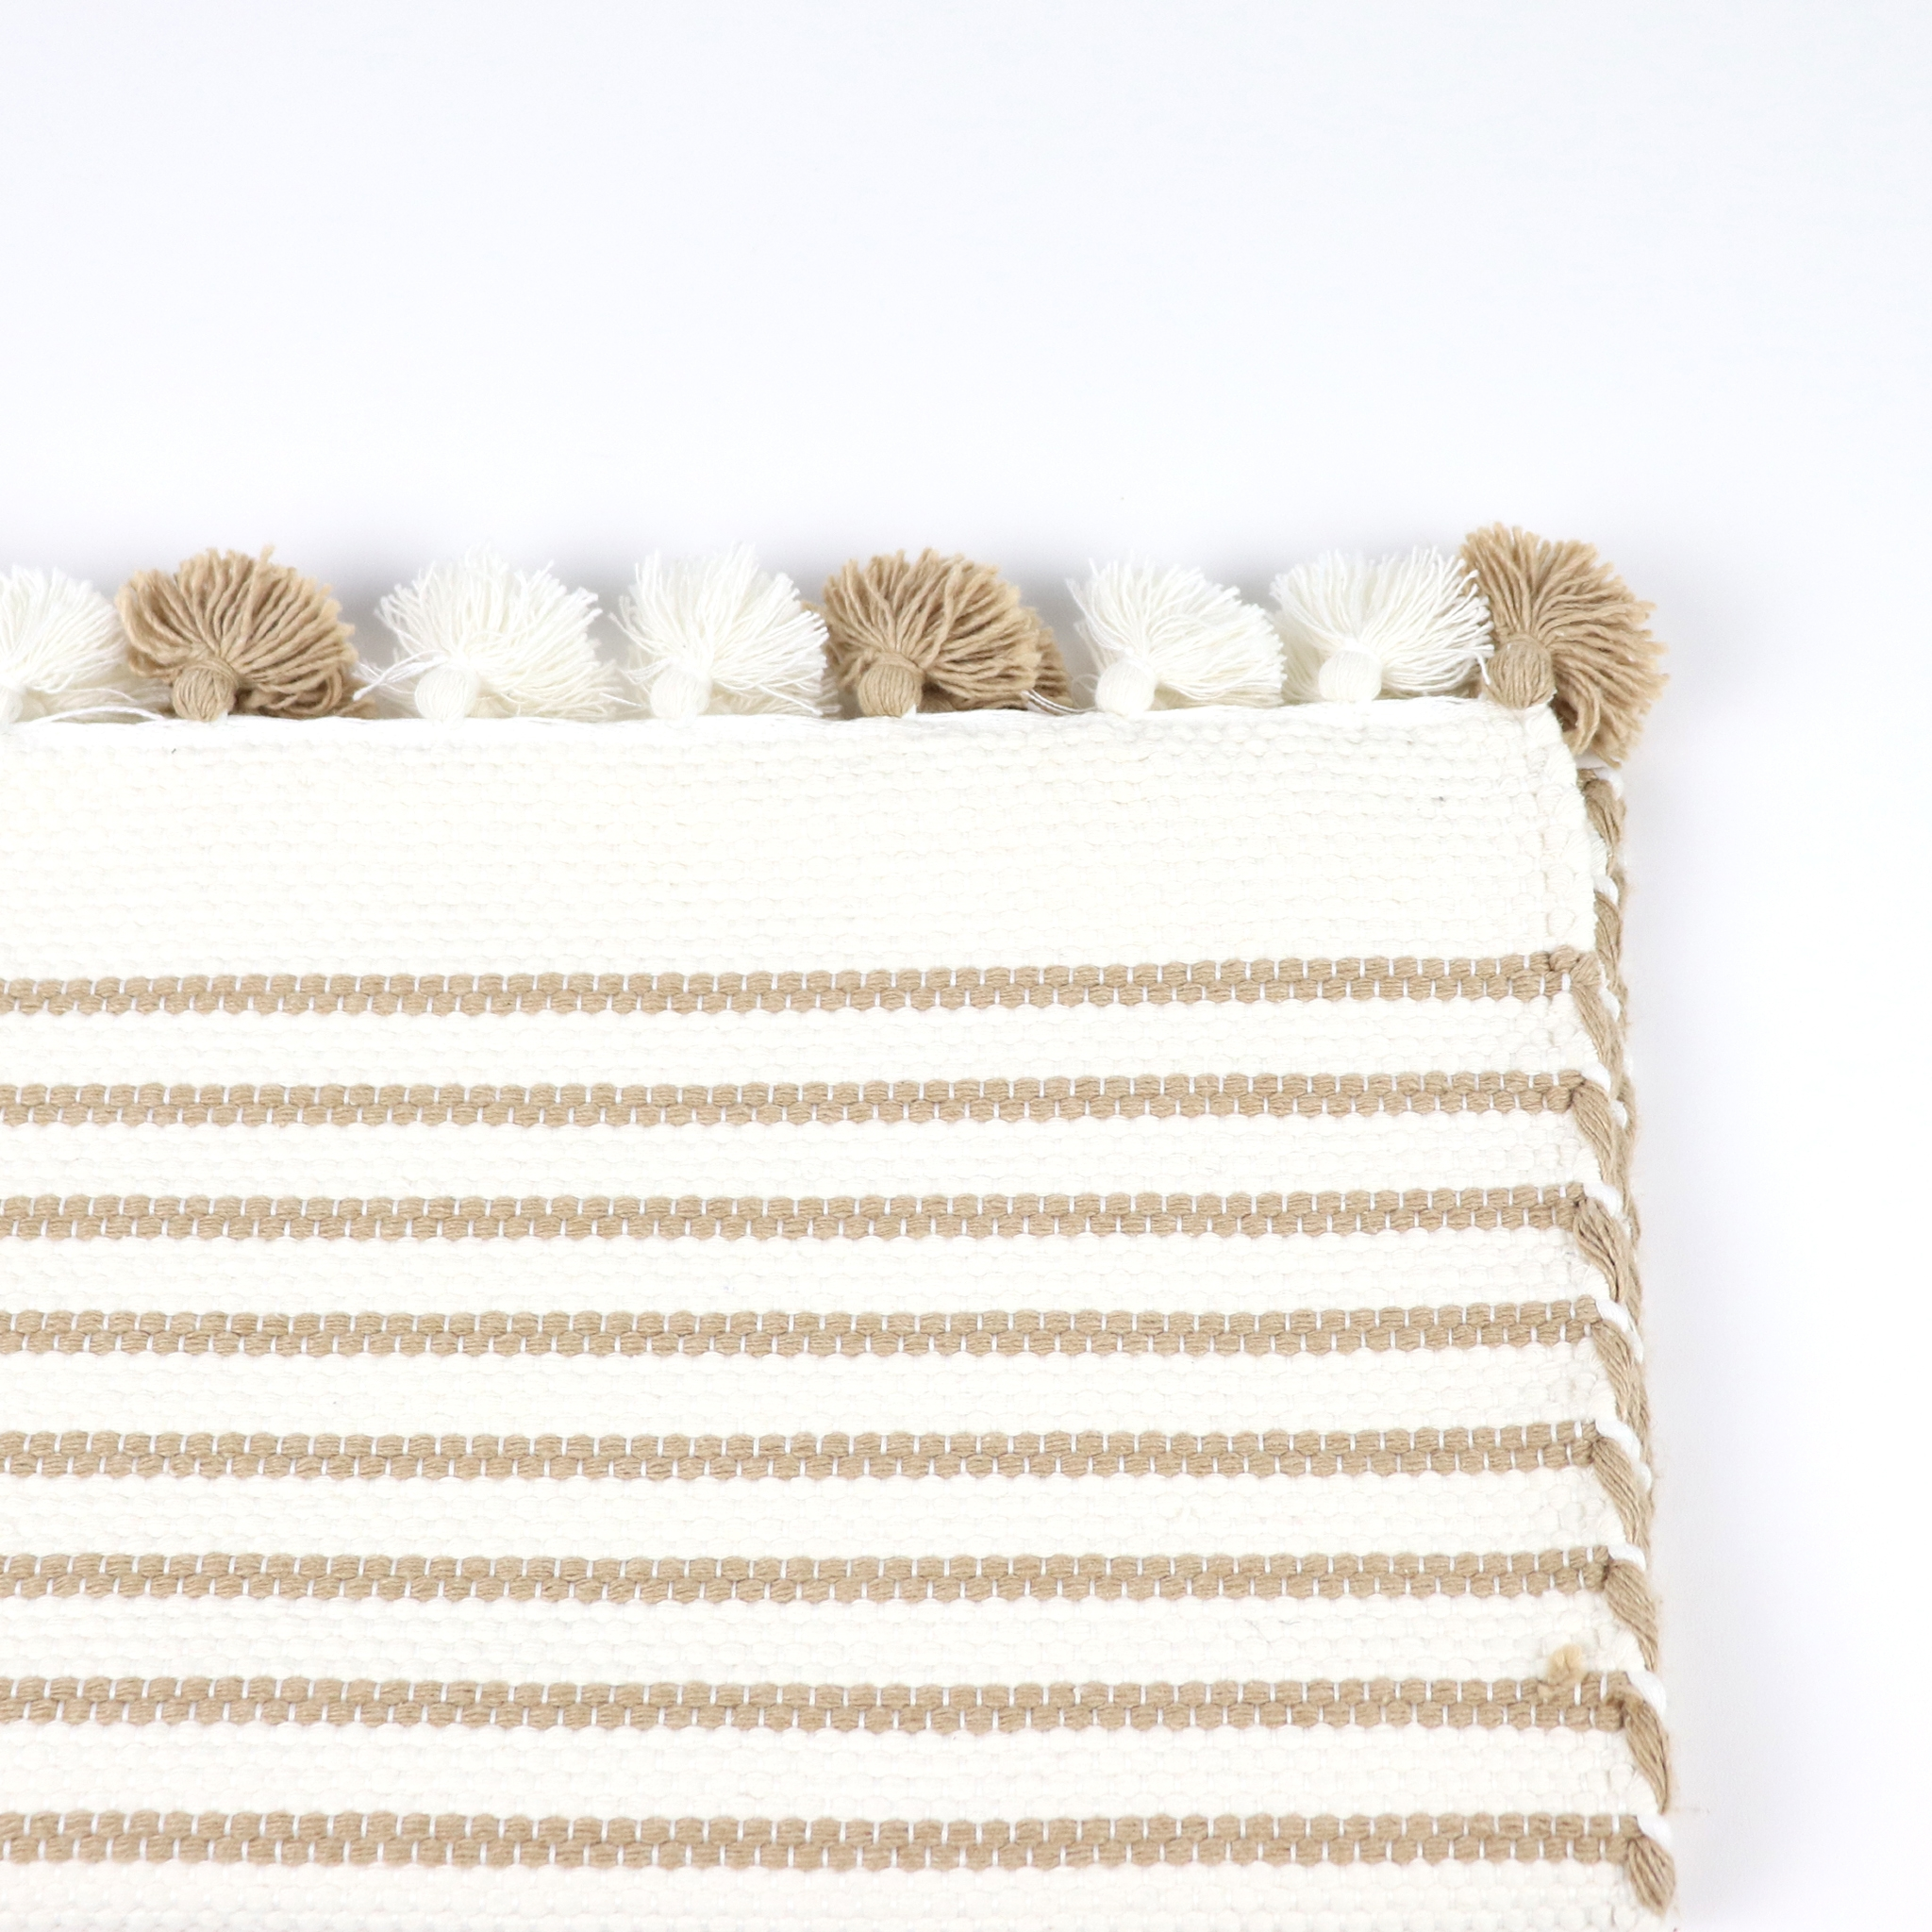 Beige and white mat with poms